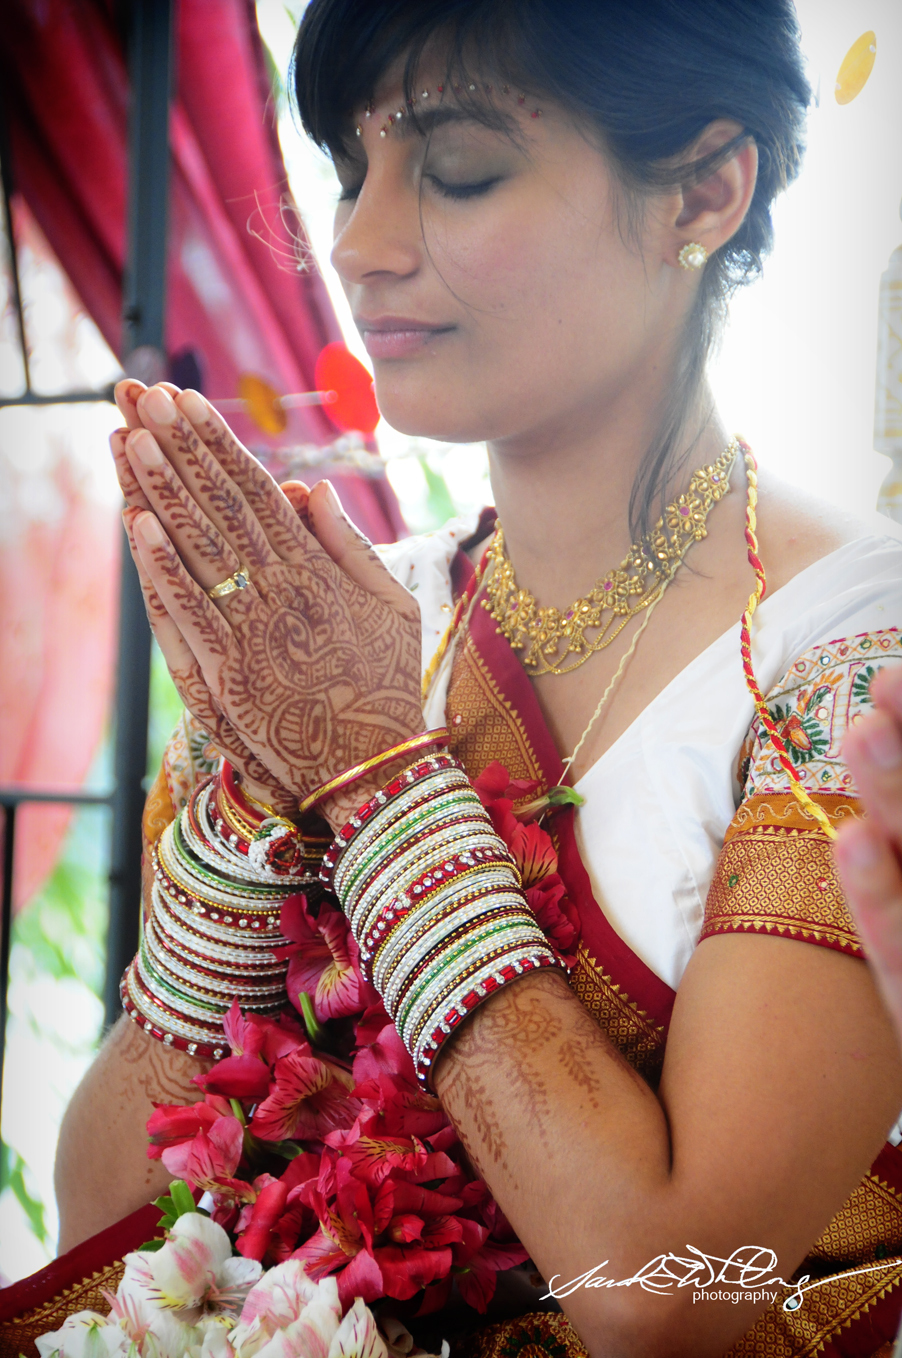 Hindu, Whitmeyer photography